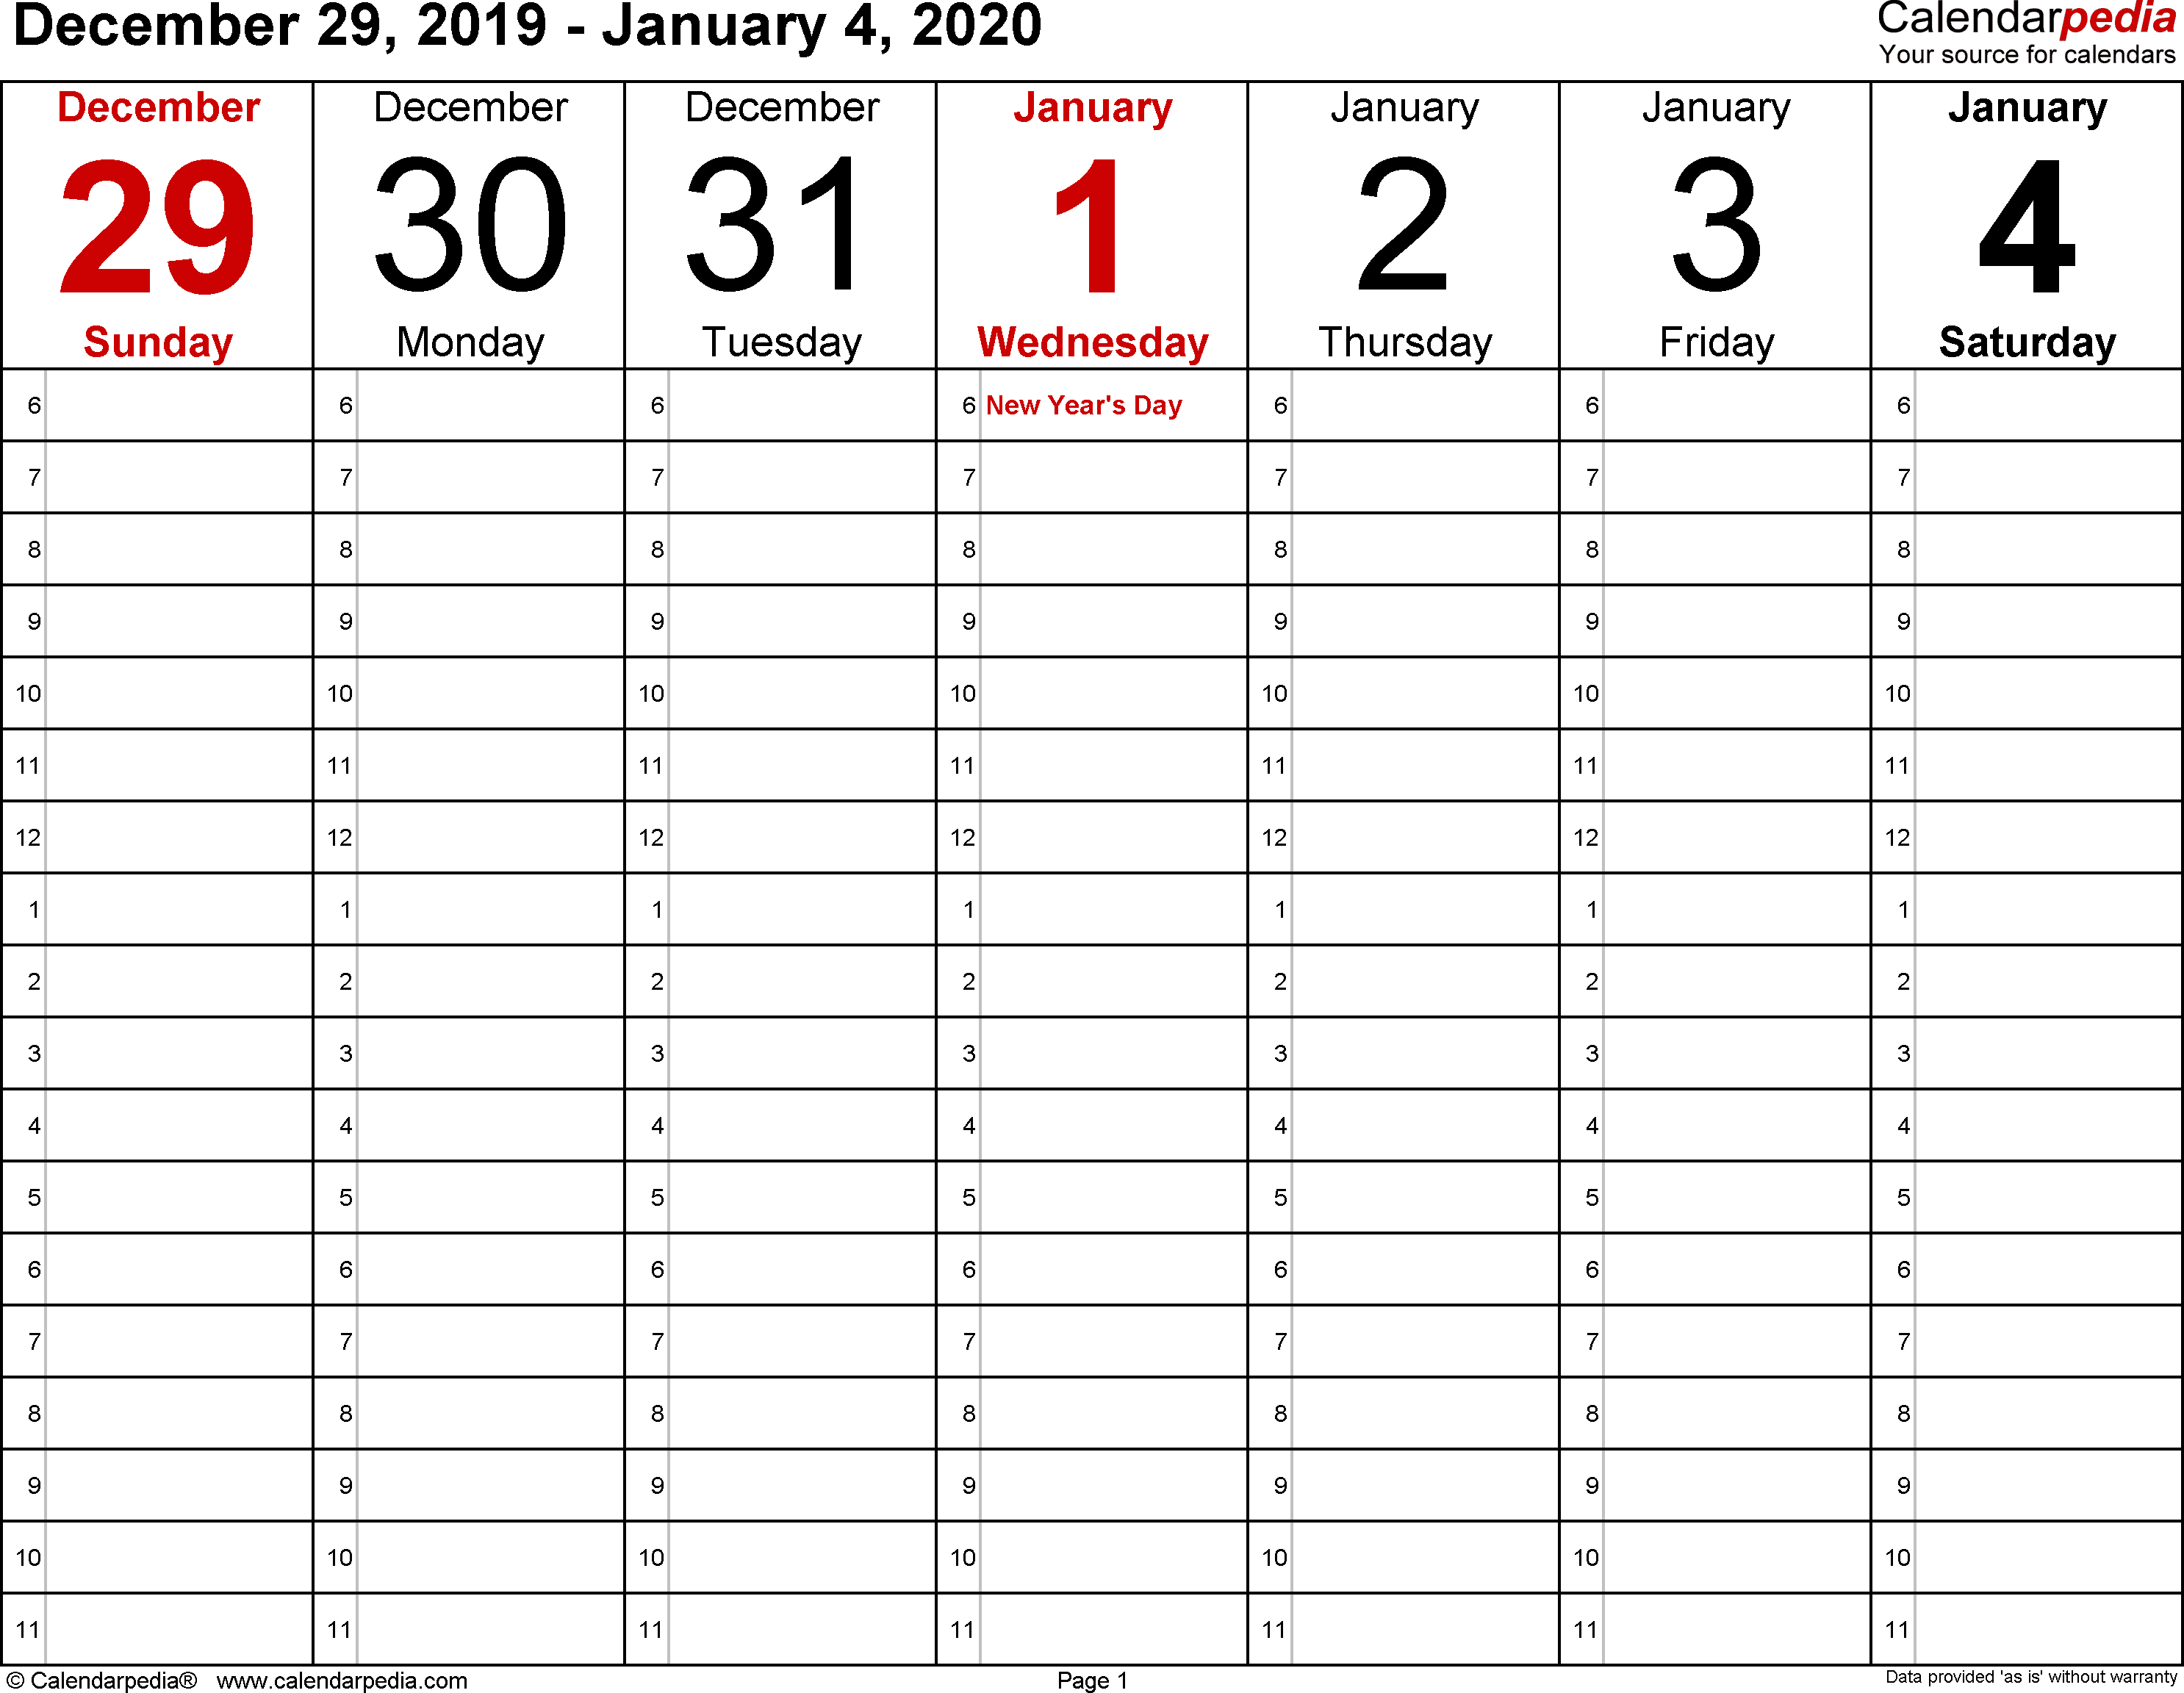 Weekly Calendar 2020 For Word - 12 Free Printable Templates intended for Free Printable Weekly Calendar 2020